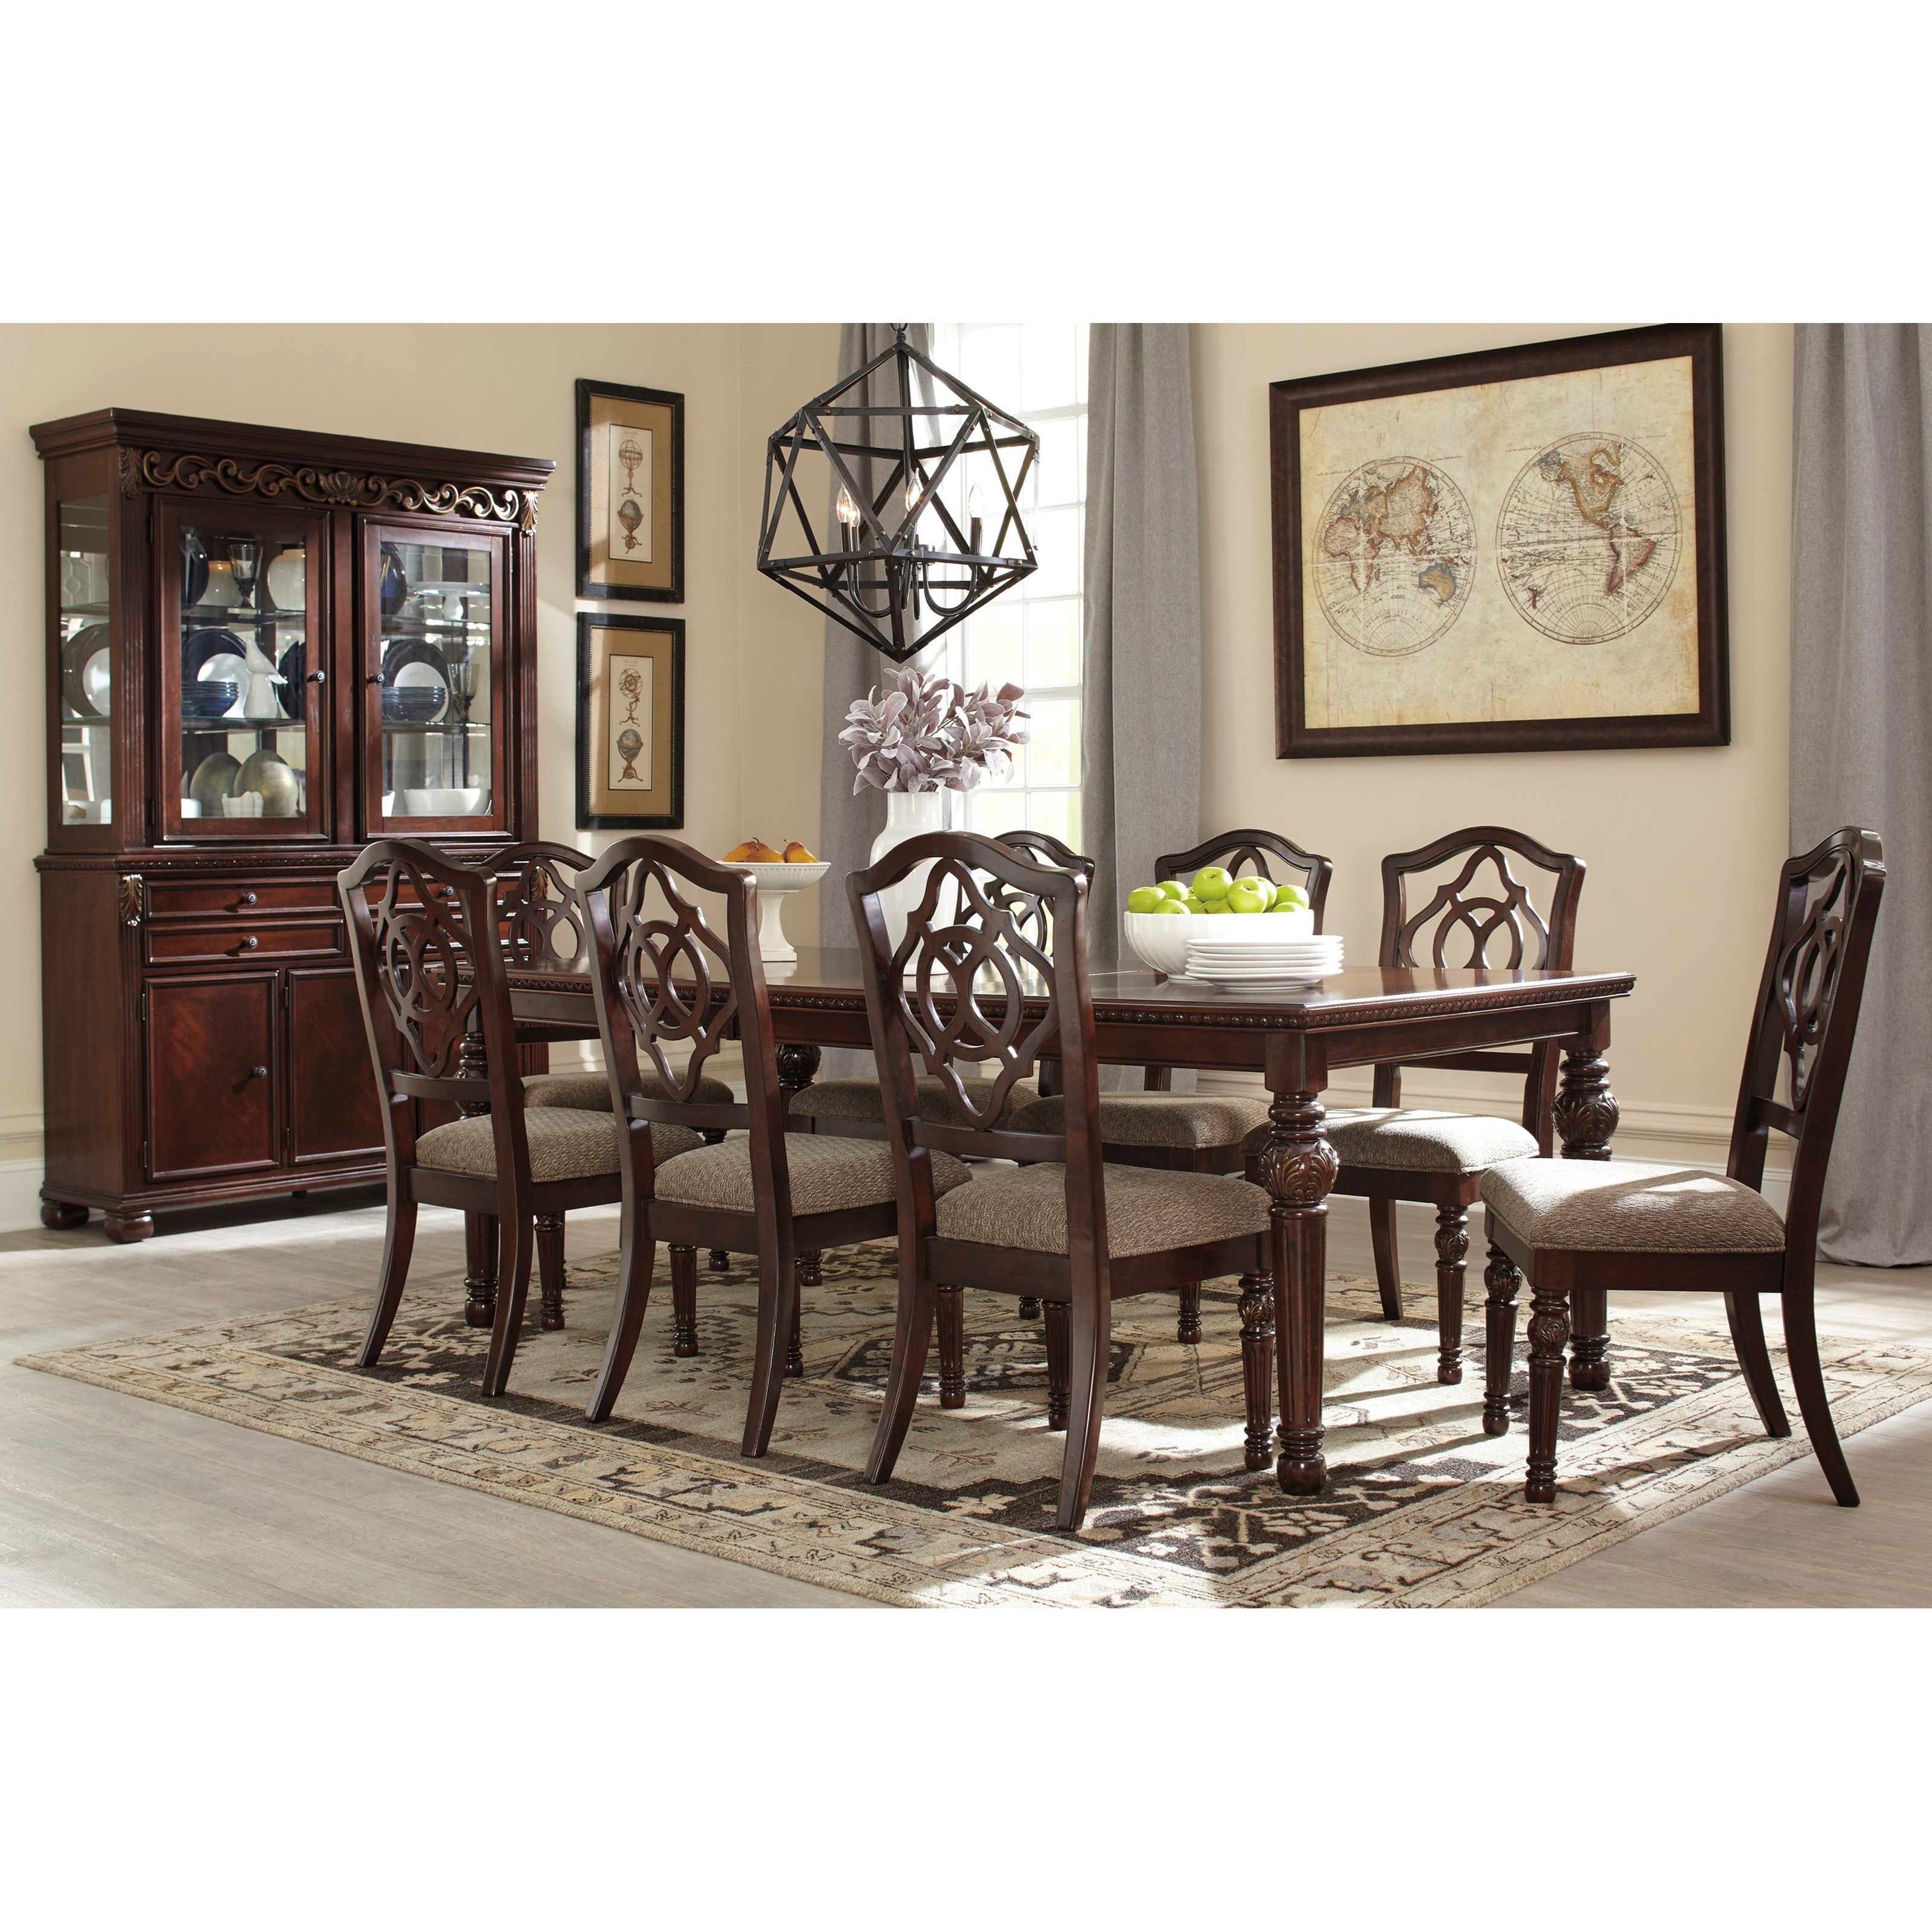 Signature design by ashley leahlyn 9 piece rectangular for Dining room furniture 9 piece